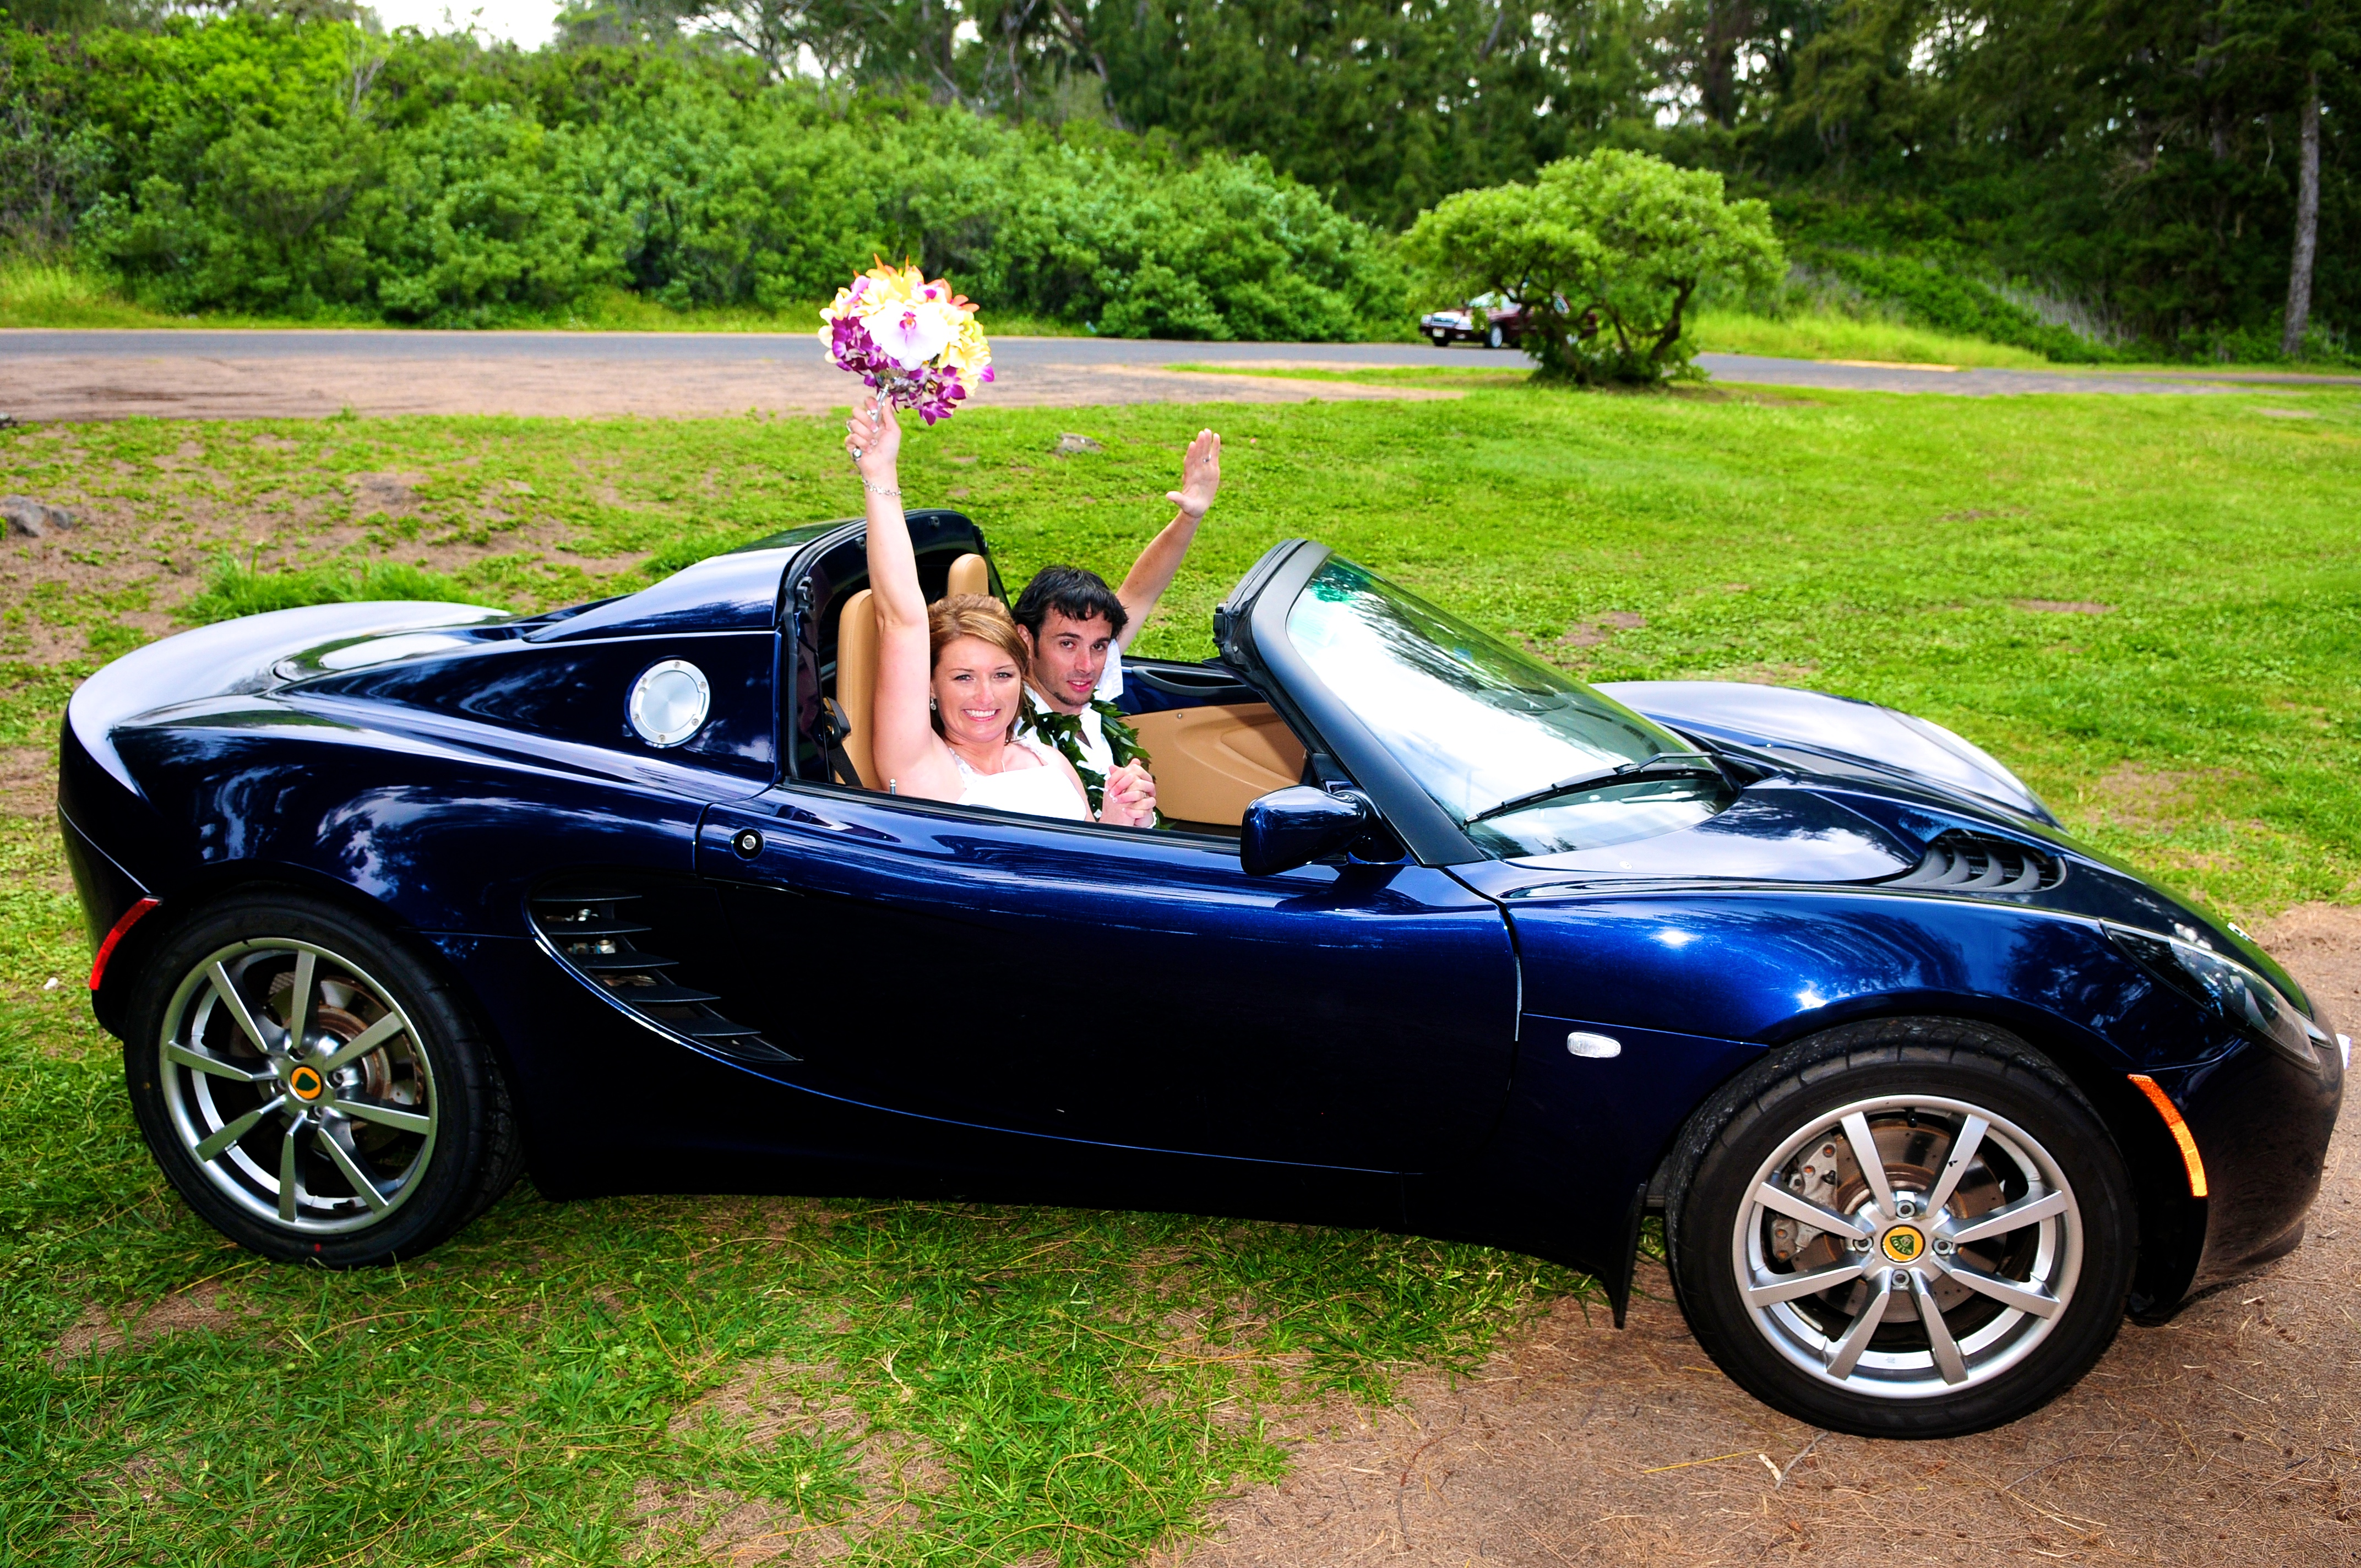 alohaislandweddings- Lotus car -32